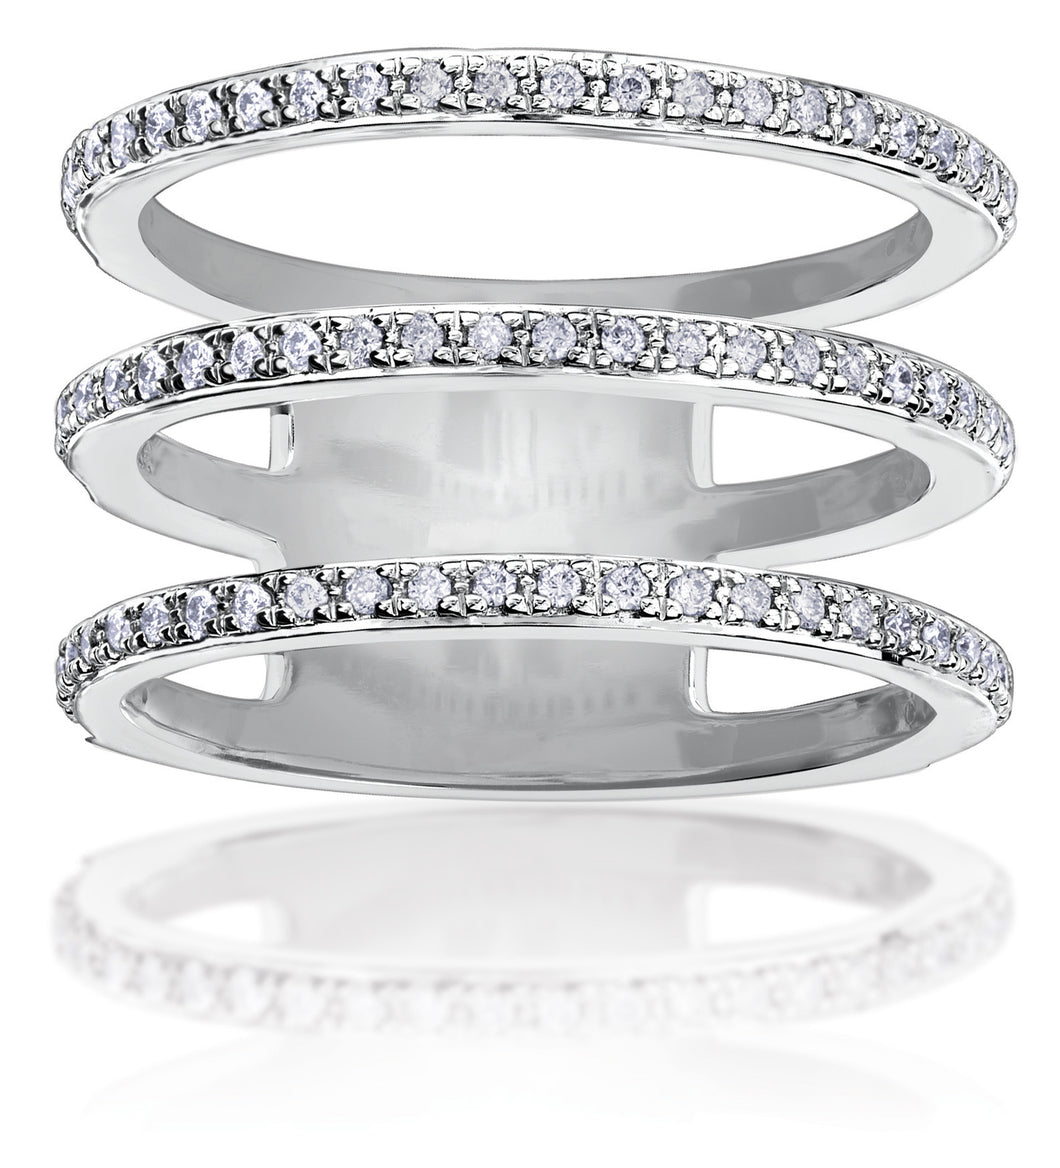 10Kt Ladies White Gold and Diamond 3 Tier Ring